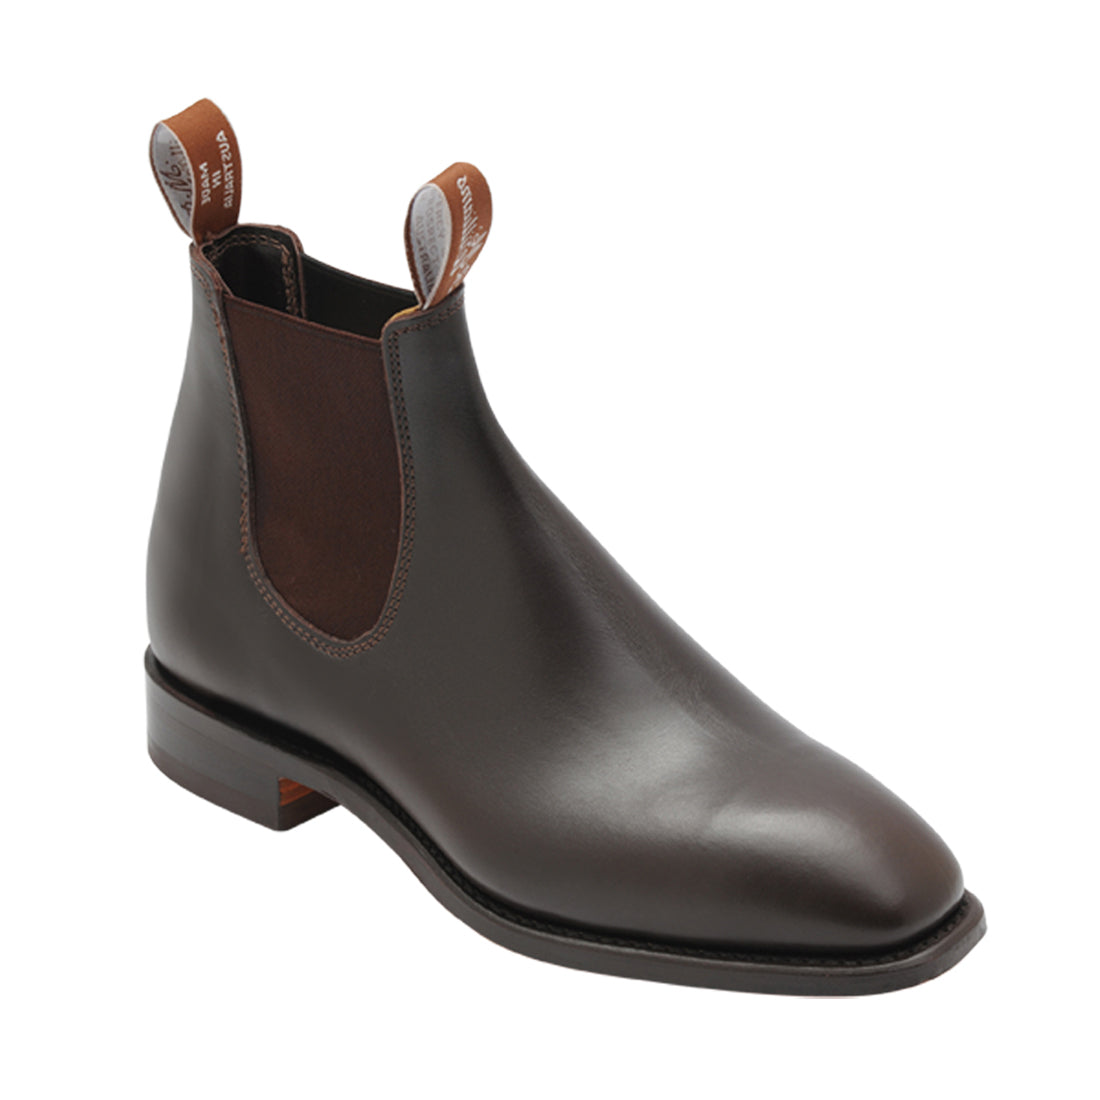 R M Williams Craftsman Yearling Boot for Men in Chestnut